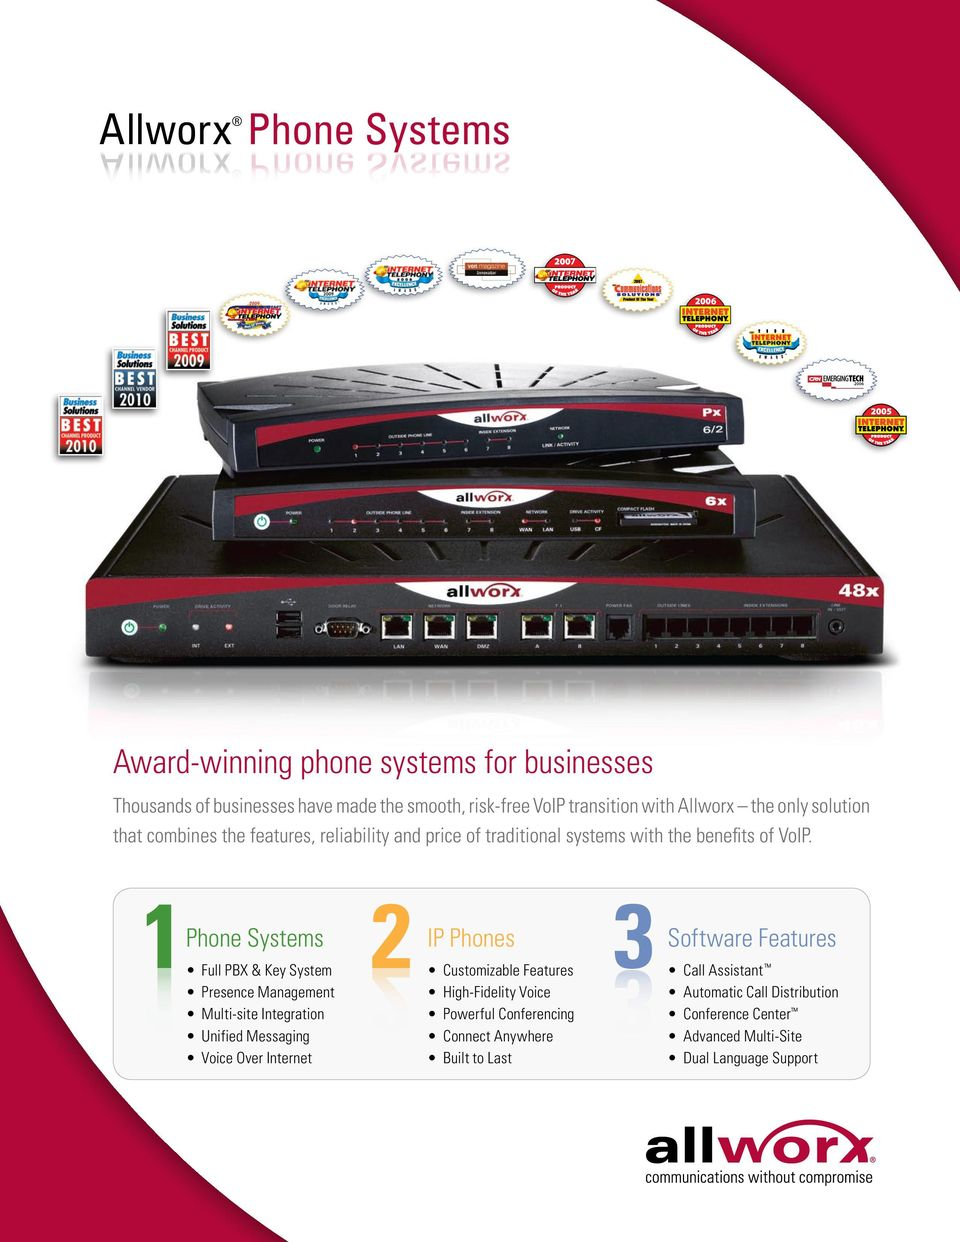 1 Phone Systems Full PBX & Key System Presence Management Multi-site Integration Unified Messaging Voice Over Internet 2 IP Phones Customizable Features